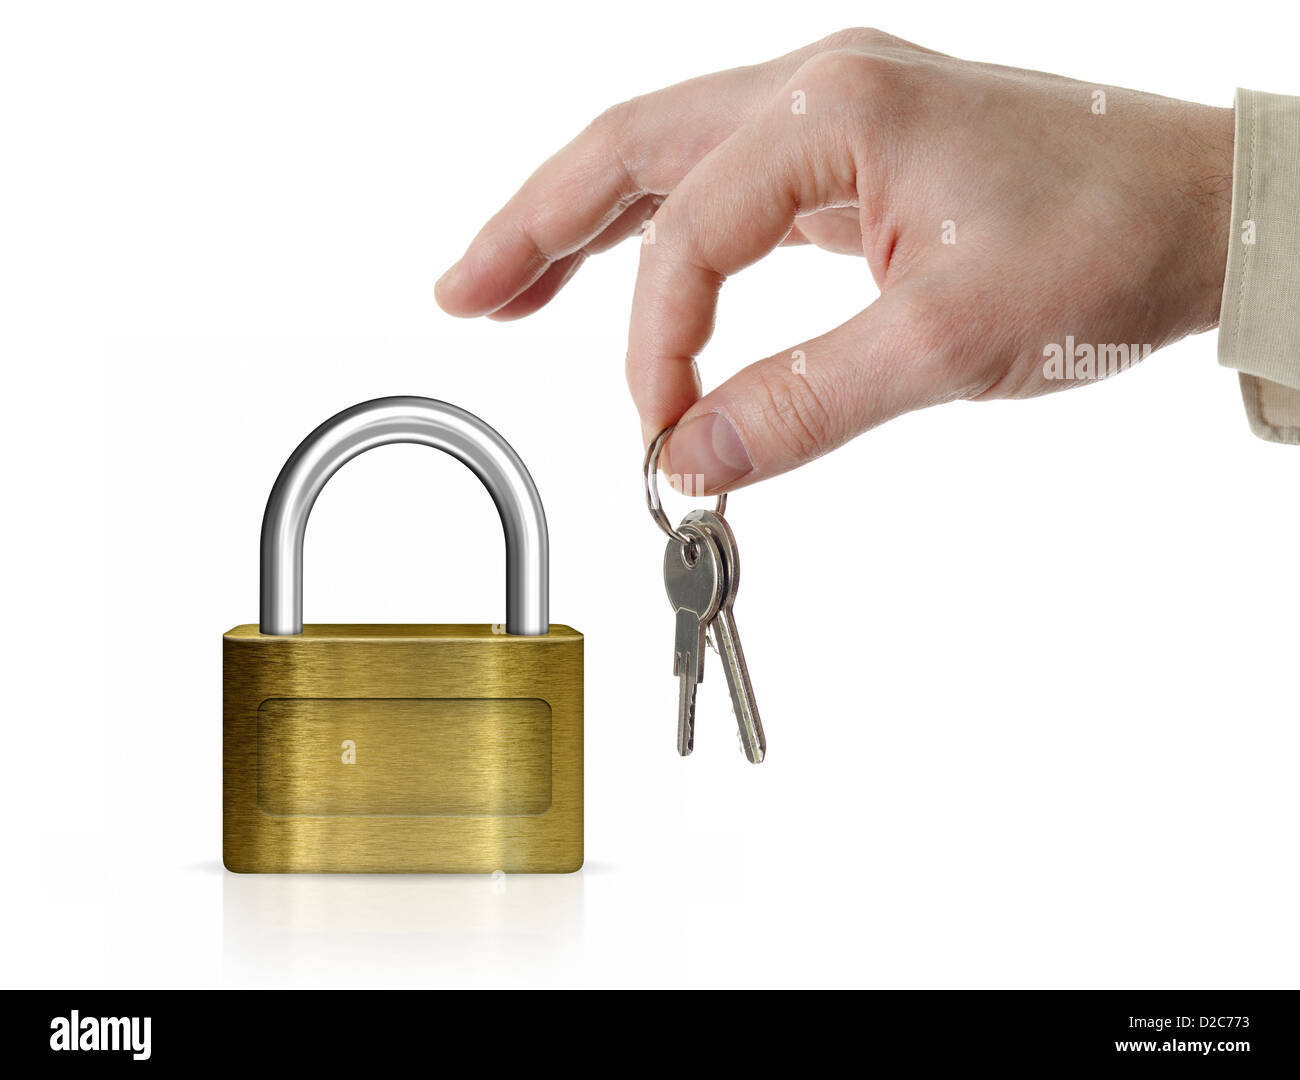 Closed lock with copyspace and man's hand holding set of keys isolated on white - Stock Image